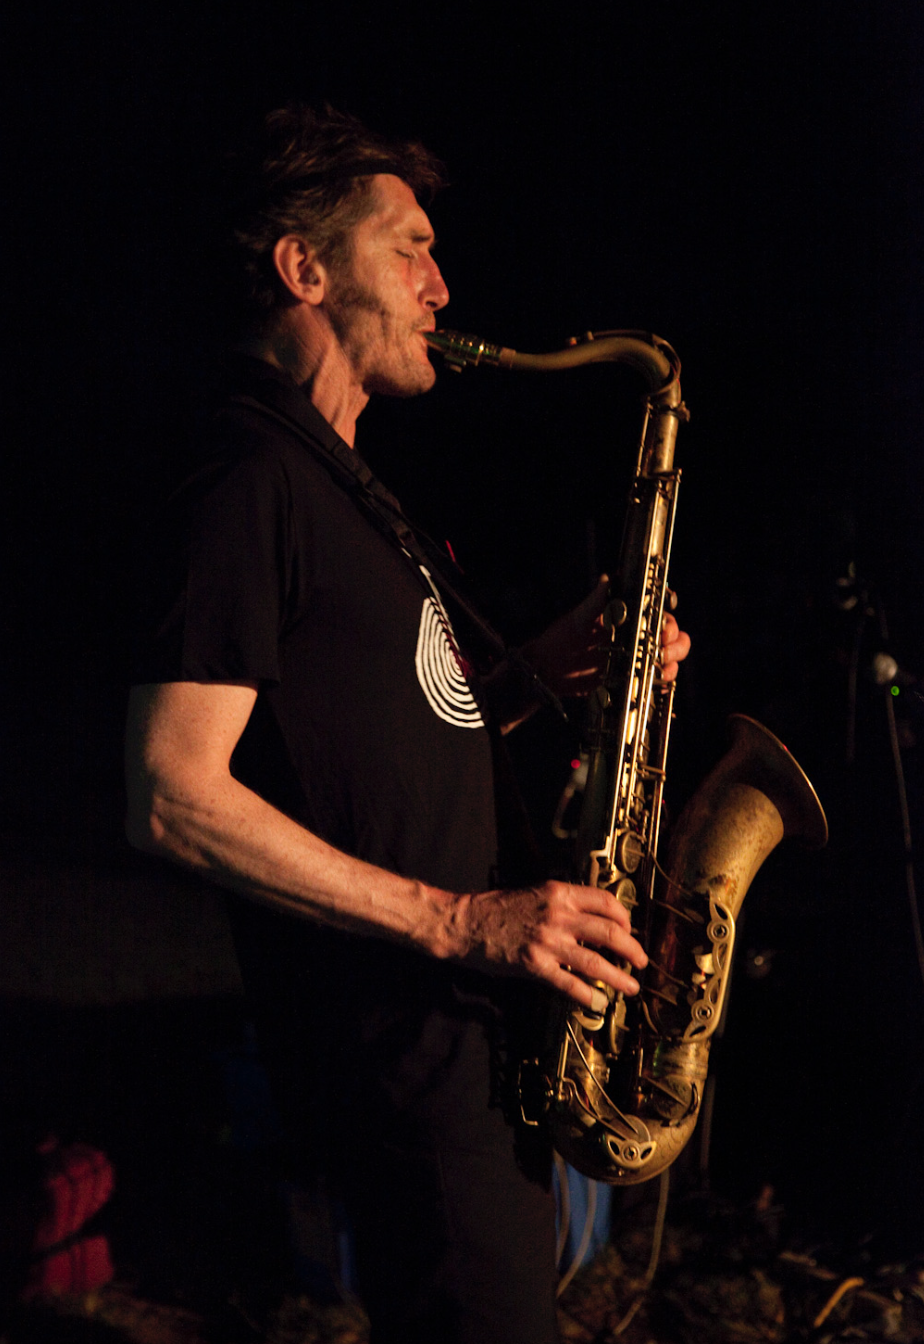 Tony Hicks, saxophone, clarinet